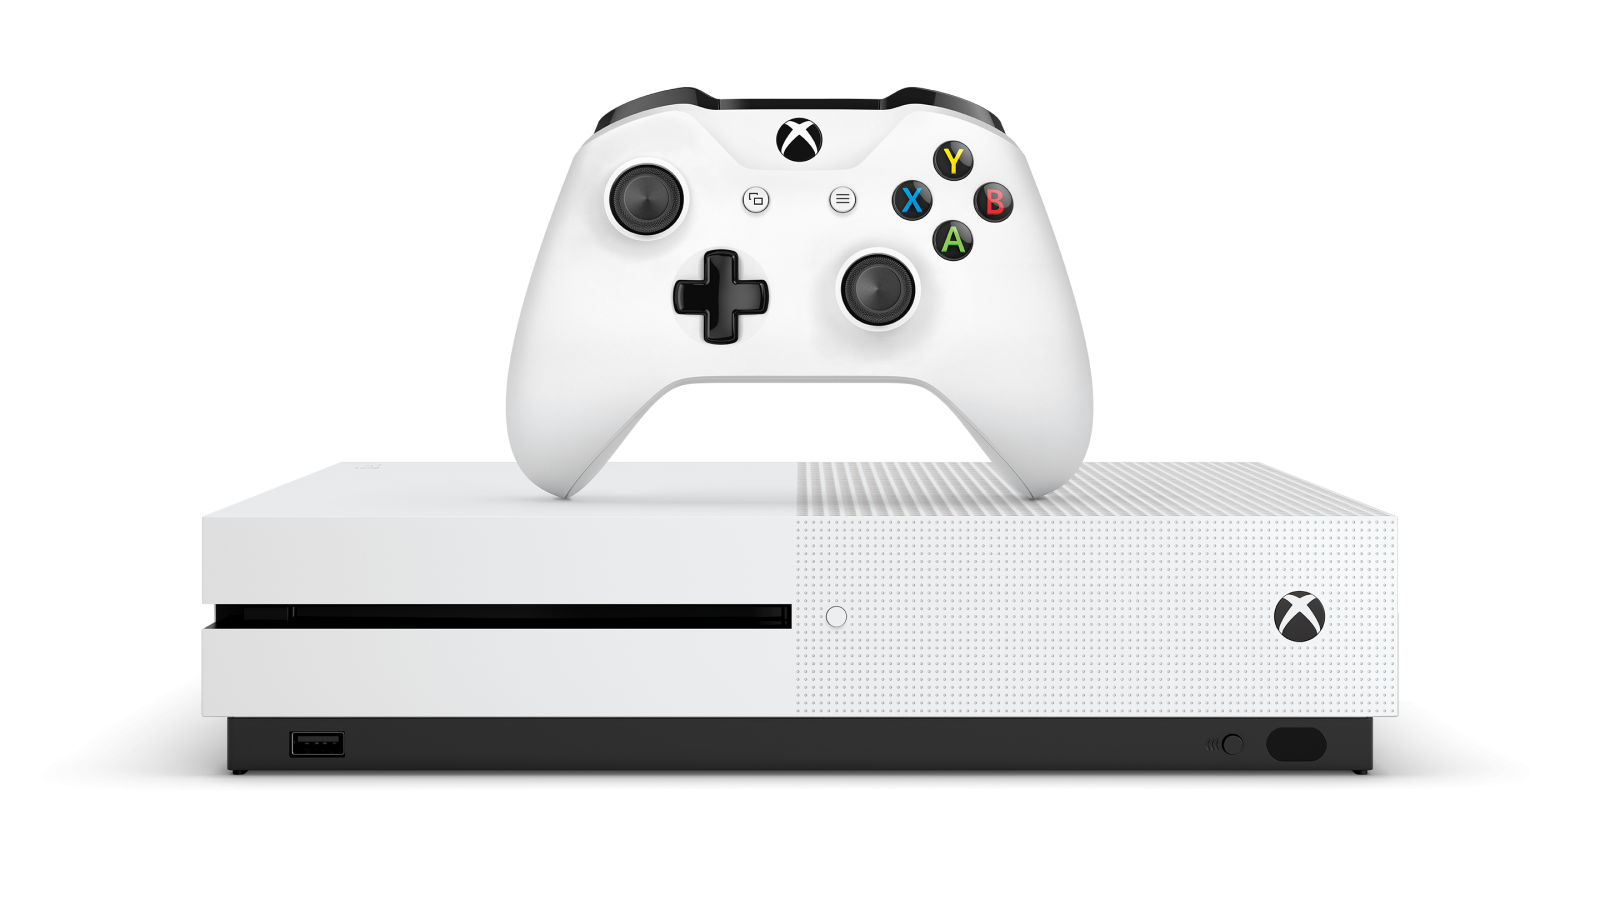 Xbox one slim release date in Australia